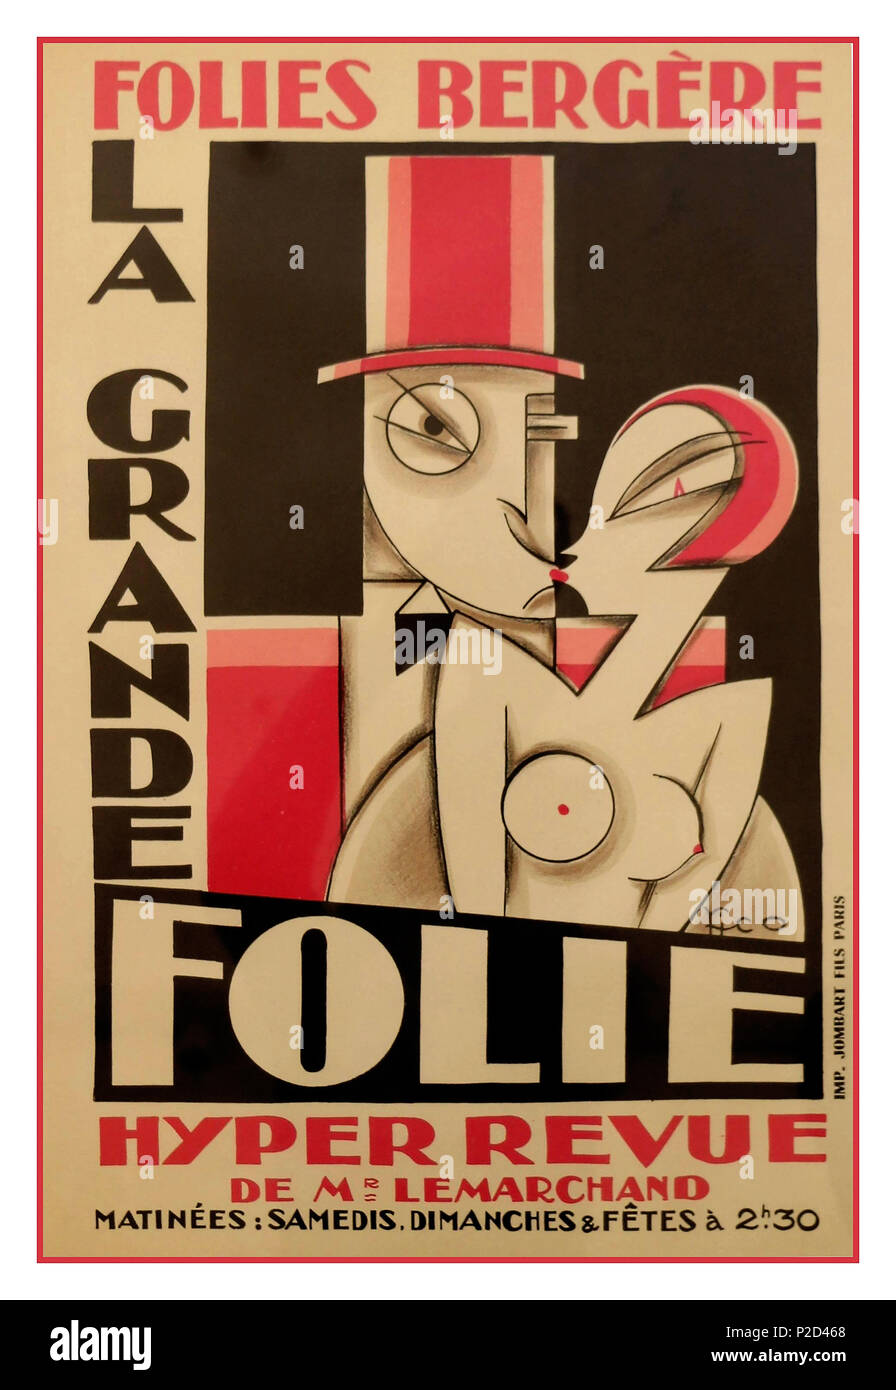 Vintage 'Folies Bergère' poster designed by sculptor Maurice Picaud known as Pico  for the spectacle show 'La Grande Folie' held at the famous cabaret 'Les Folies Bergère' in the late 1920's. Poster printed by Jombart Fils-Paris. Maurice Picaud is an artist of decorative arts following his design for the Art Deco façade of the cabaret les Folies Bergère in the late 1920s in Paris France Published by Jombart Fils Paris - Stock Image